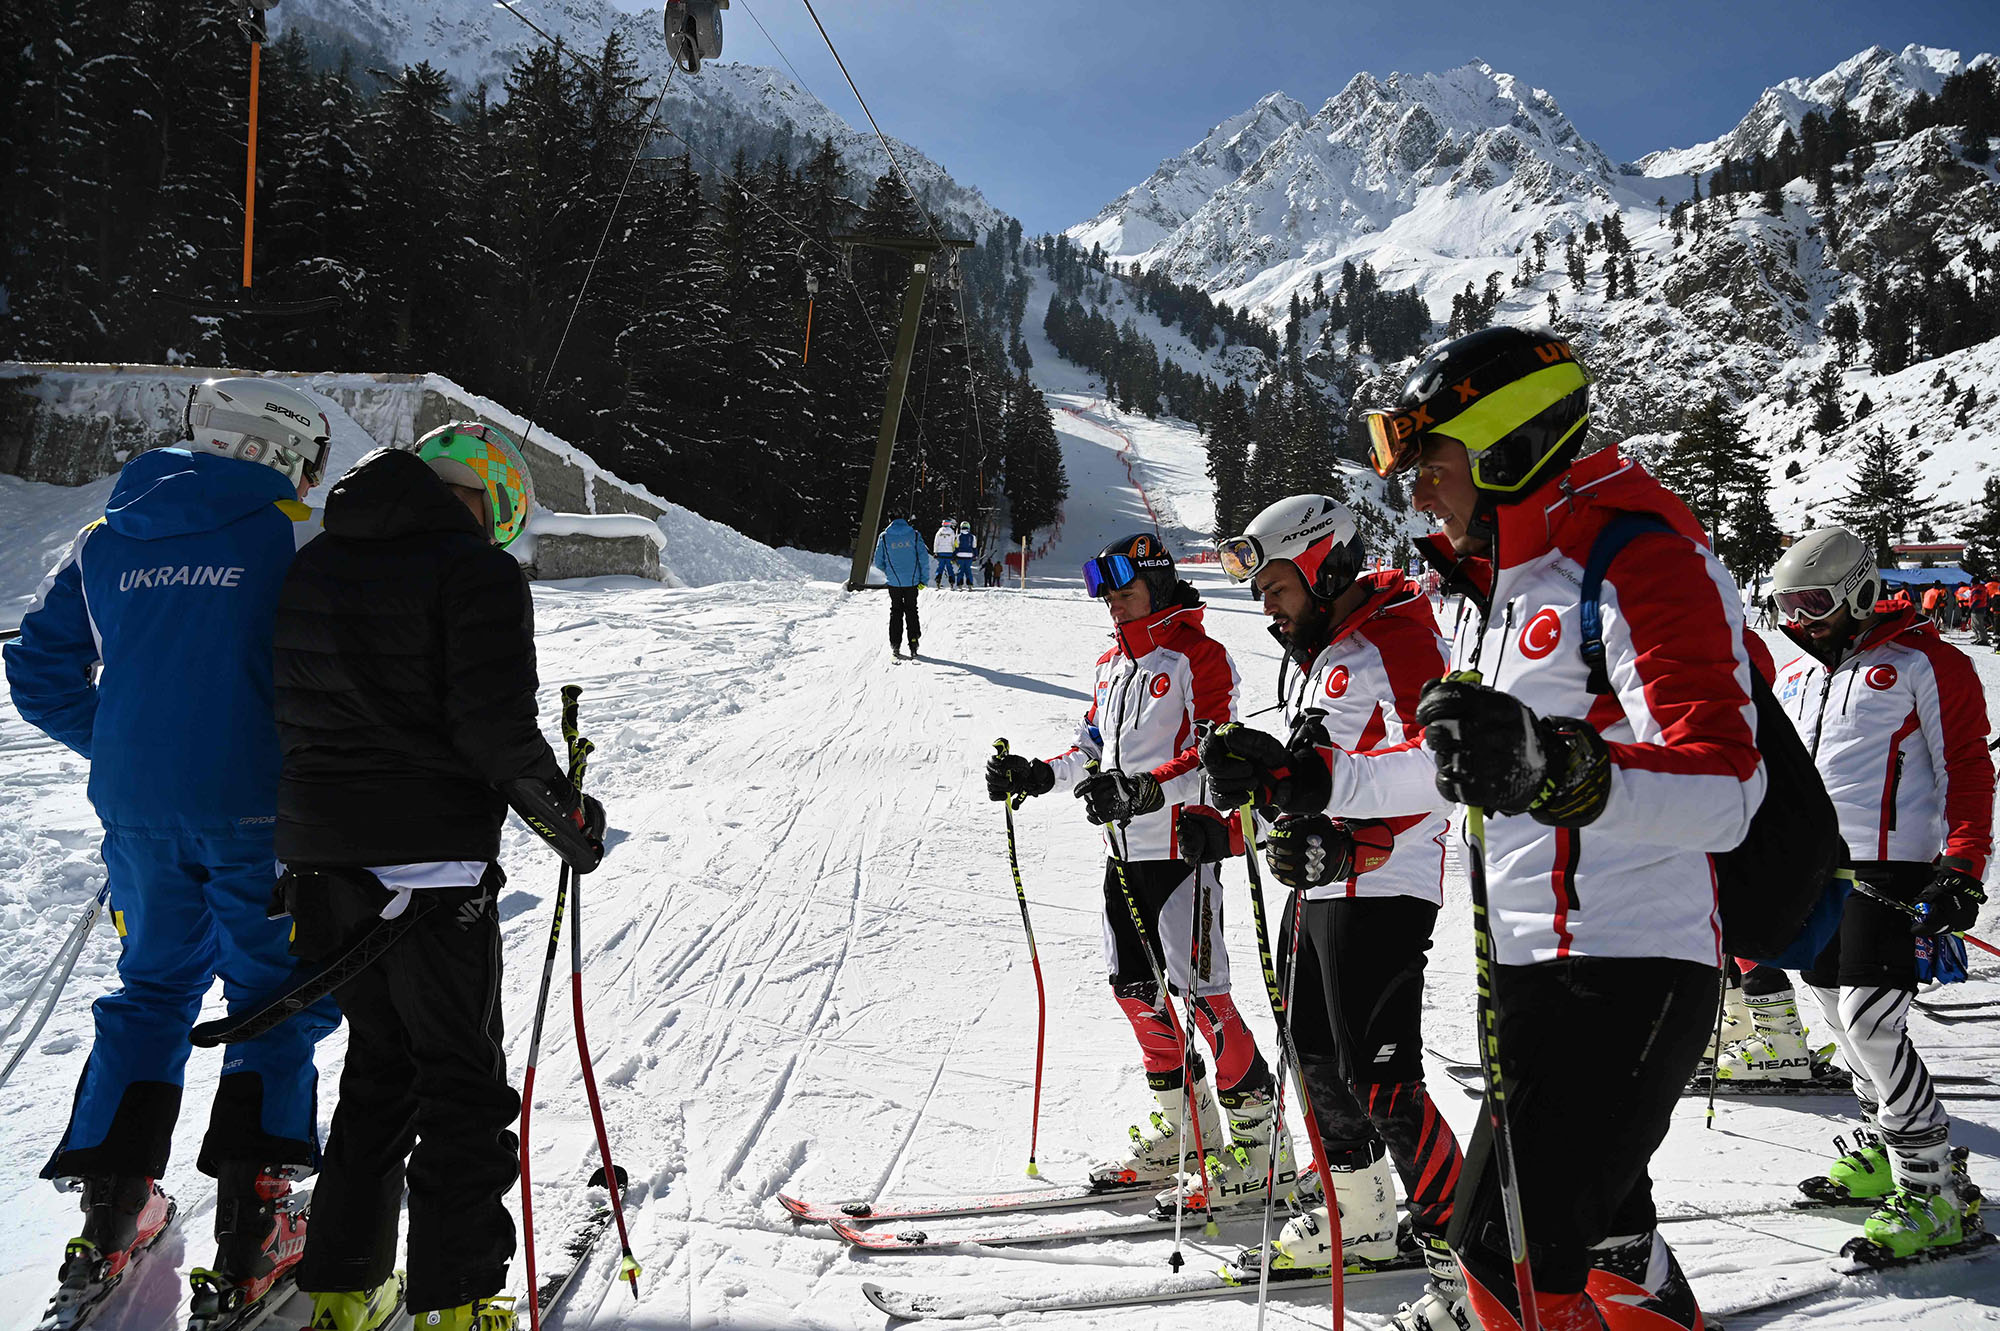 In this picture taken on January 29, 2019, Turkish and Ukrainian skiers make their way to a slope to compete in the CAS Karakoram International Alpine Ski Cup, at the Pakistan Air Force-owned and operated Naltar Ski Resort, some 25km north of Gilgit in Pakistan´s remote mountainous north. Photo AFP